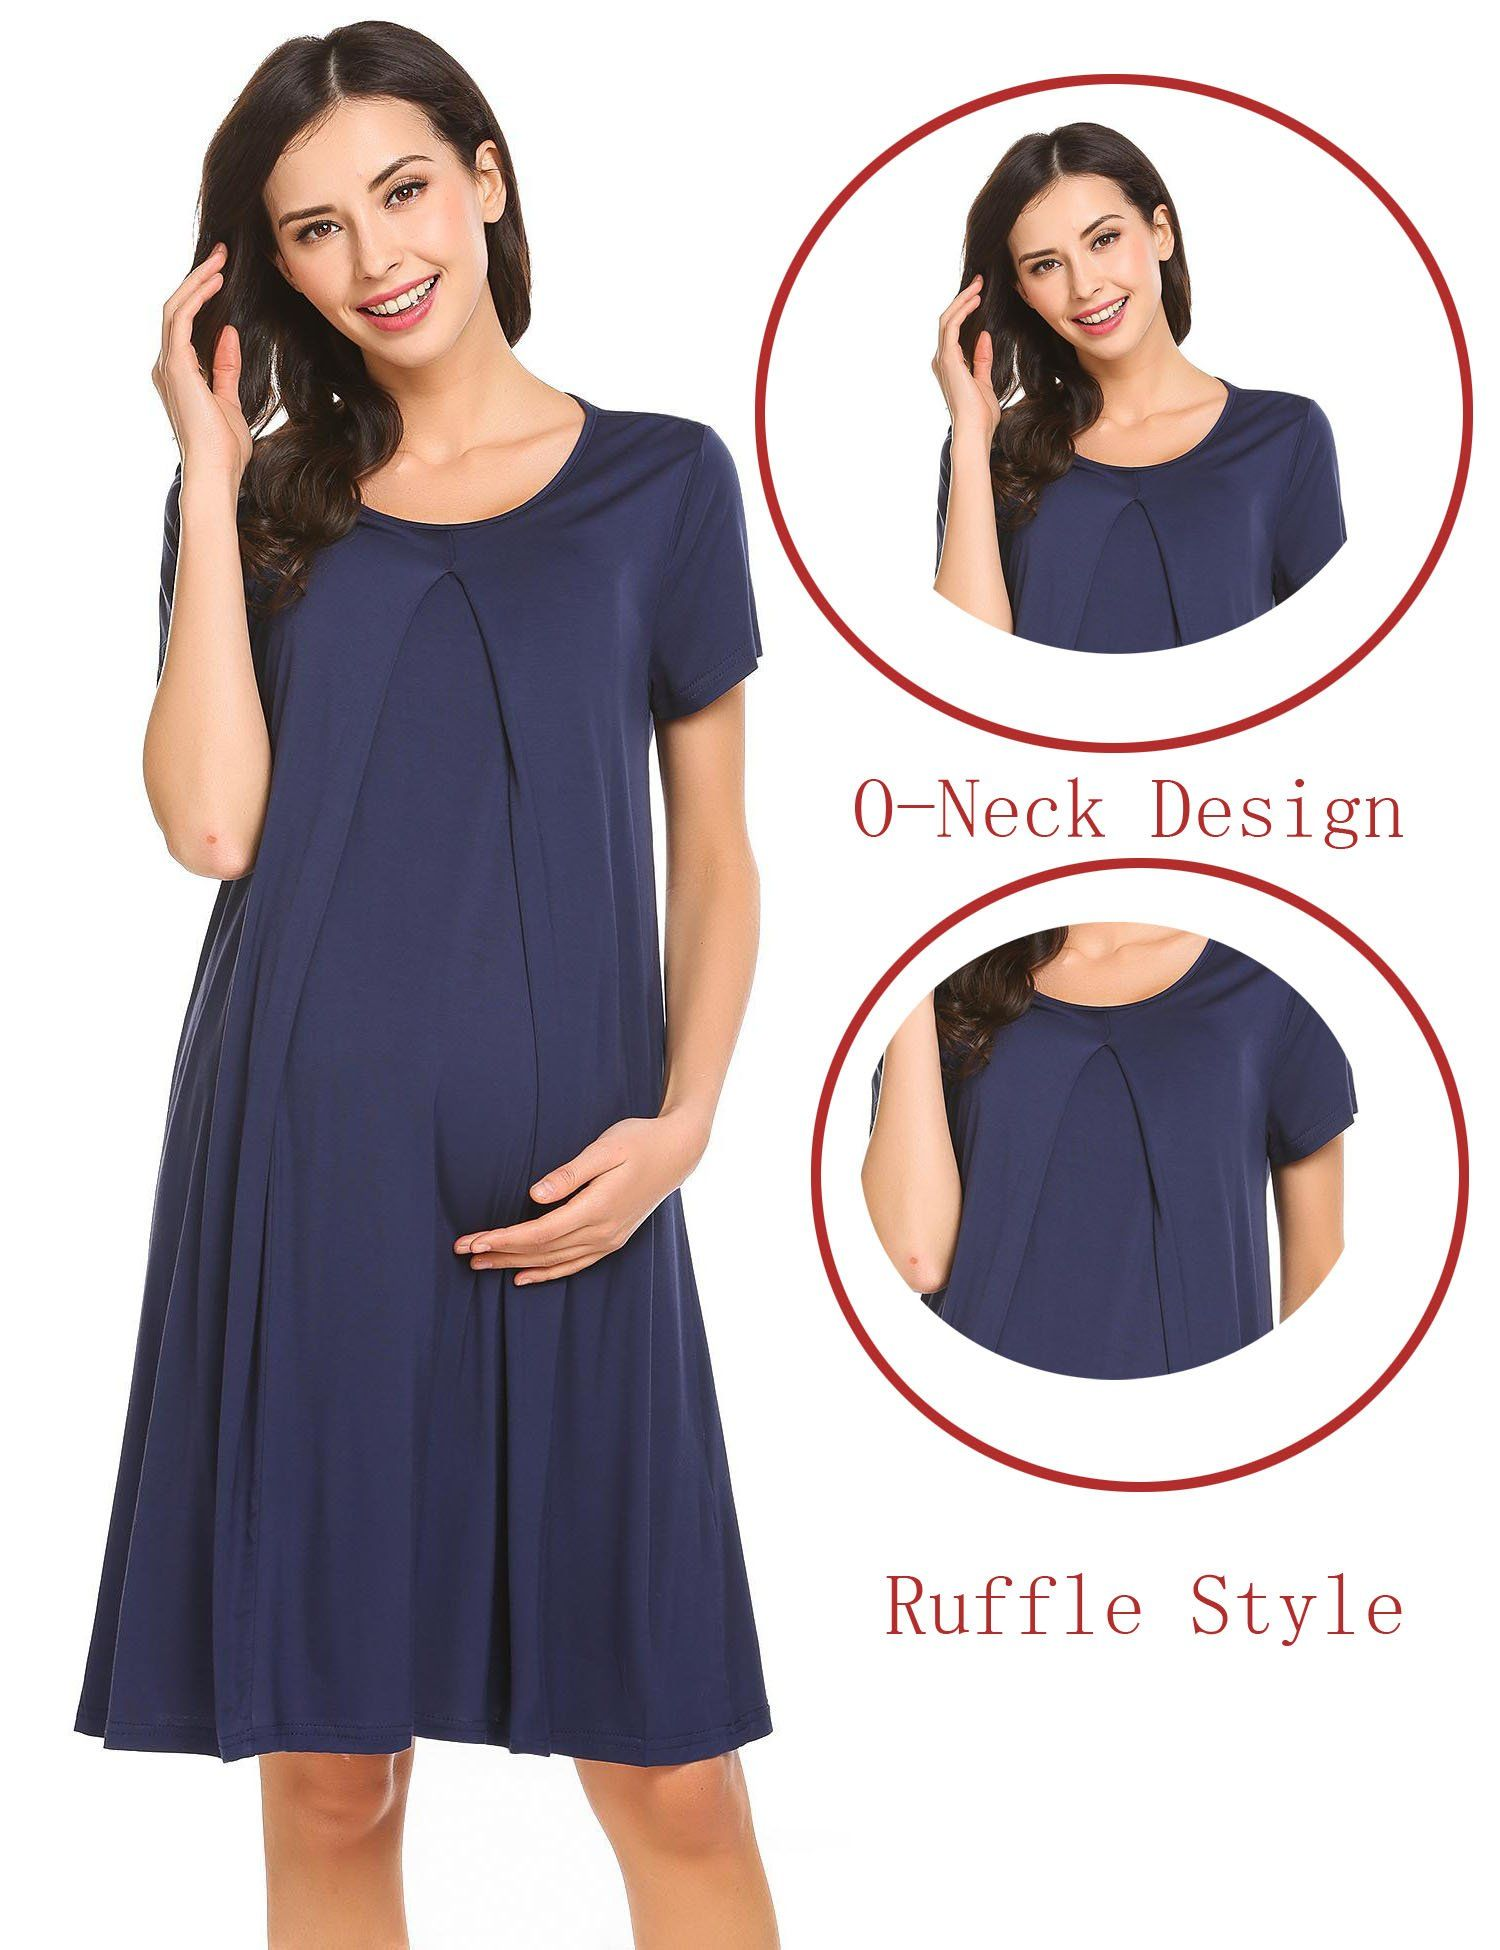 4e48217c82359 Maternity Outfits - awesome maternity dresses   Adidome Maternity Nursing  Nightgown Dress Sleepwear Breastfeeding Pregnancy Pajamas    Read more at  the ...